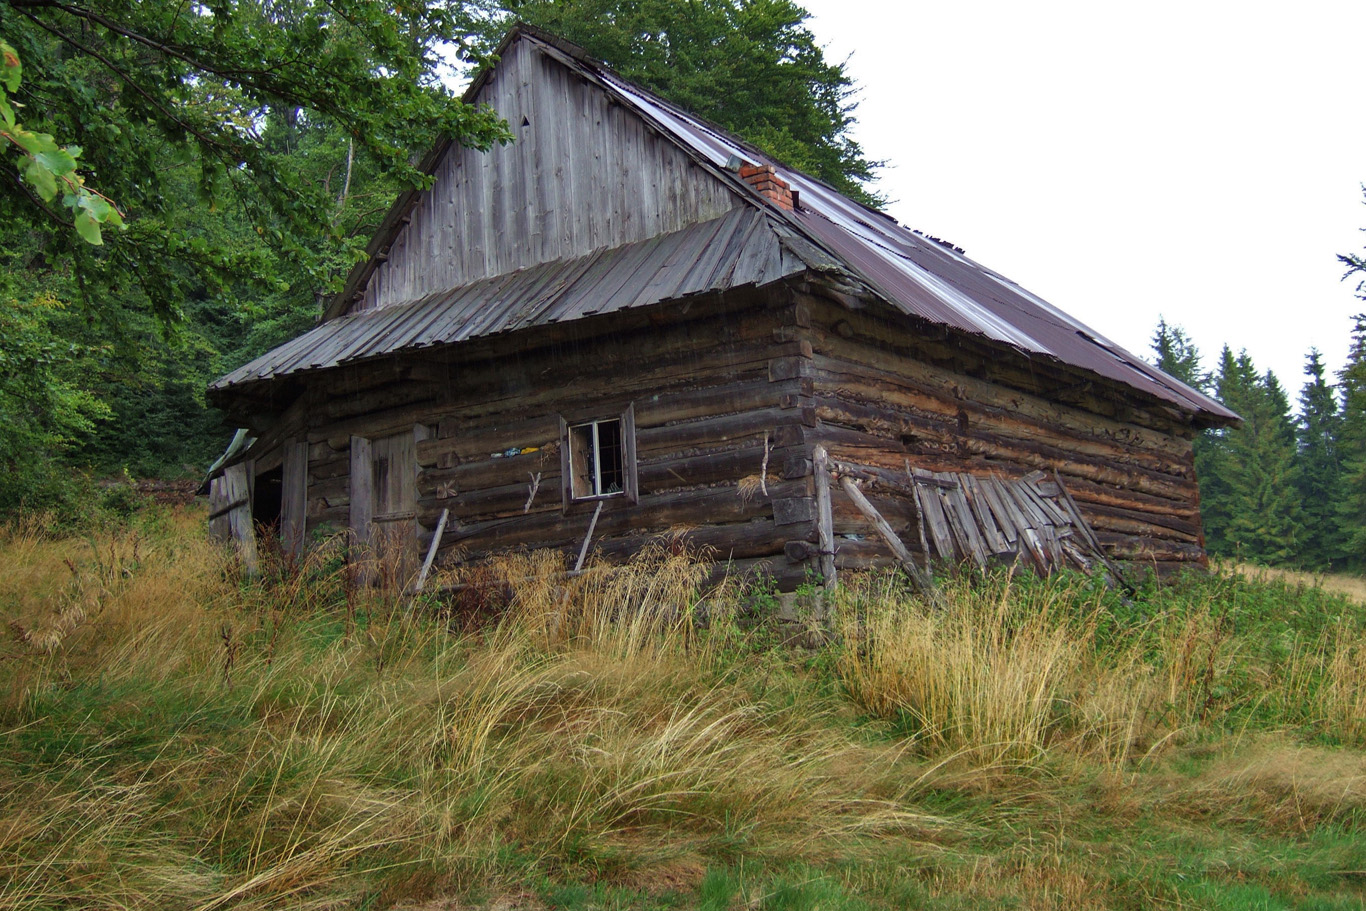 One of the abandoned cottages